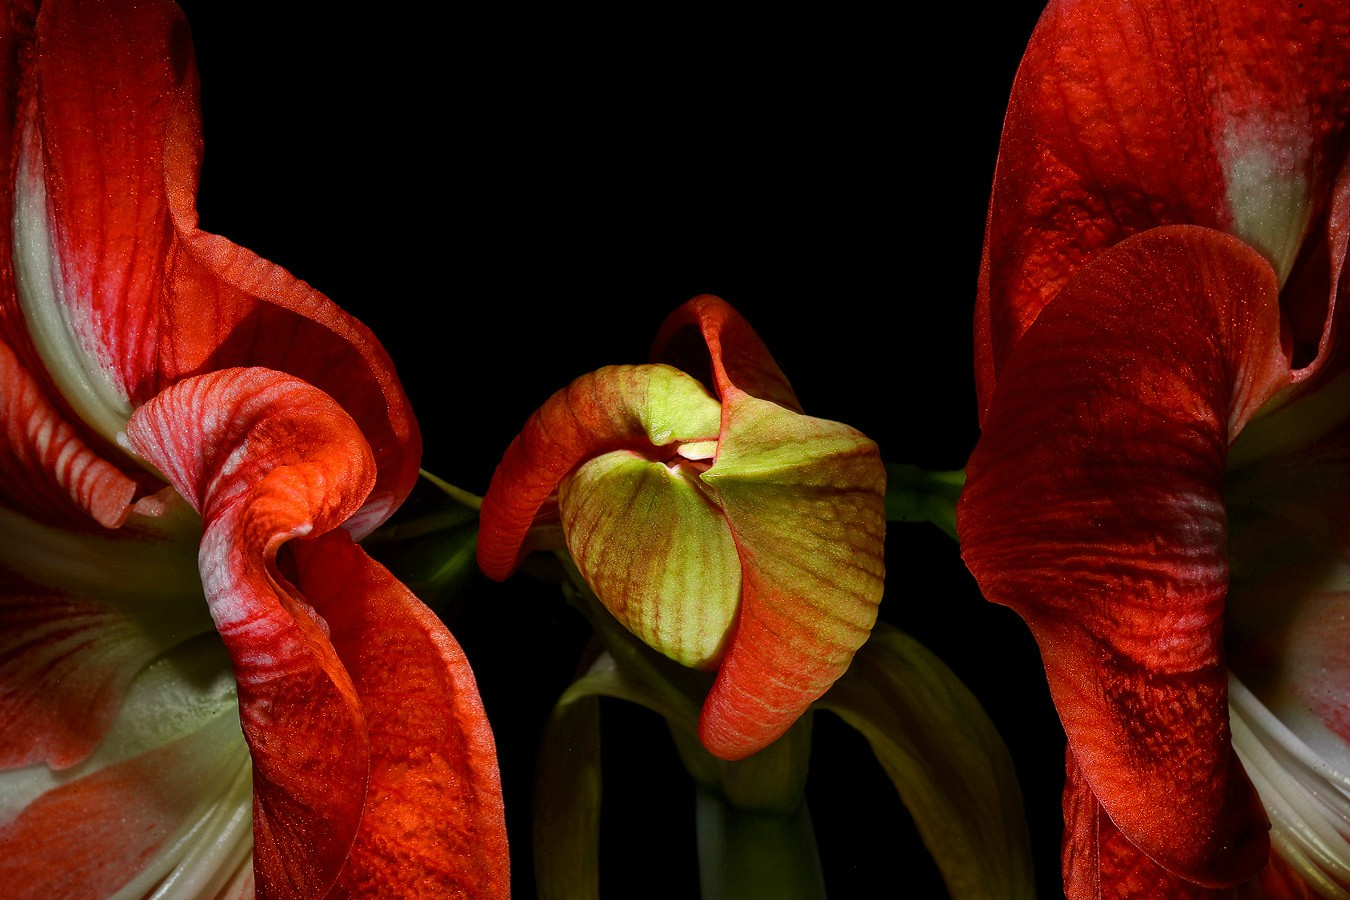 amaryllis squeezed aw author sava gregory and ve verena